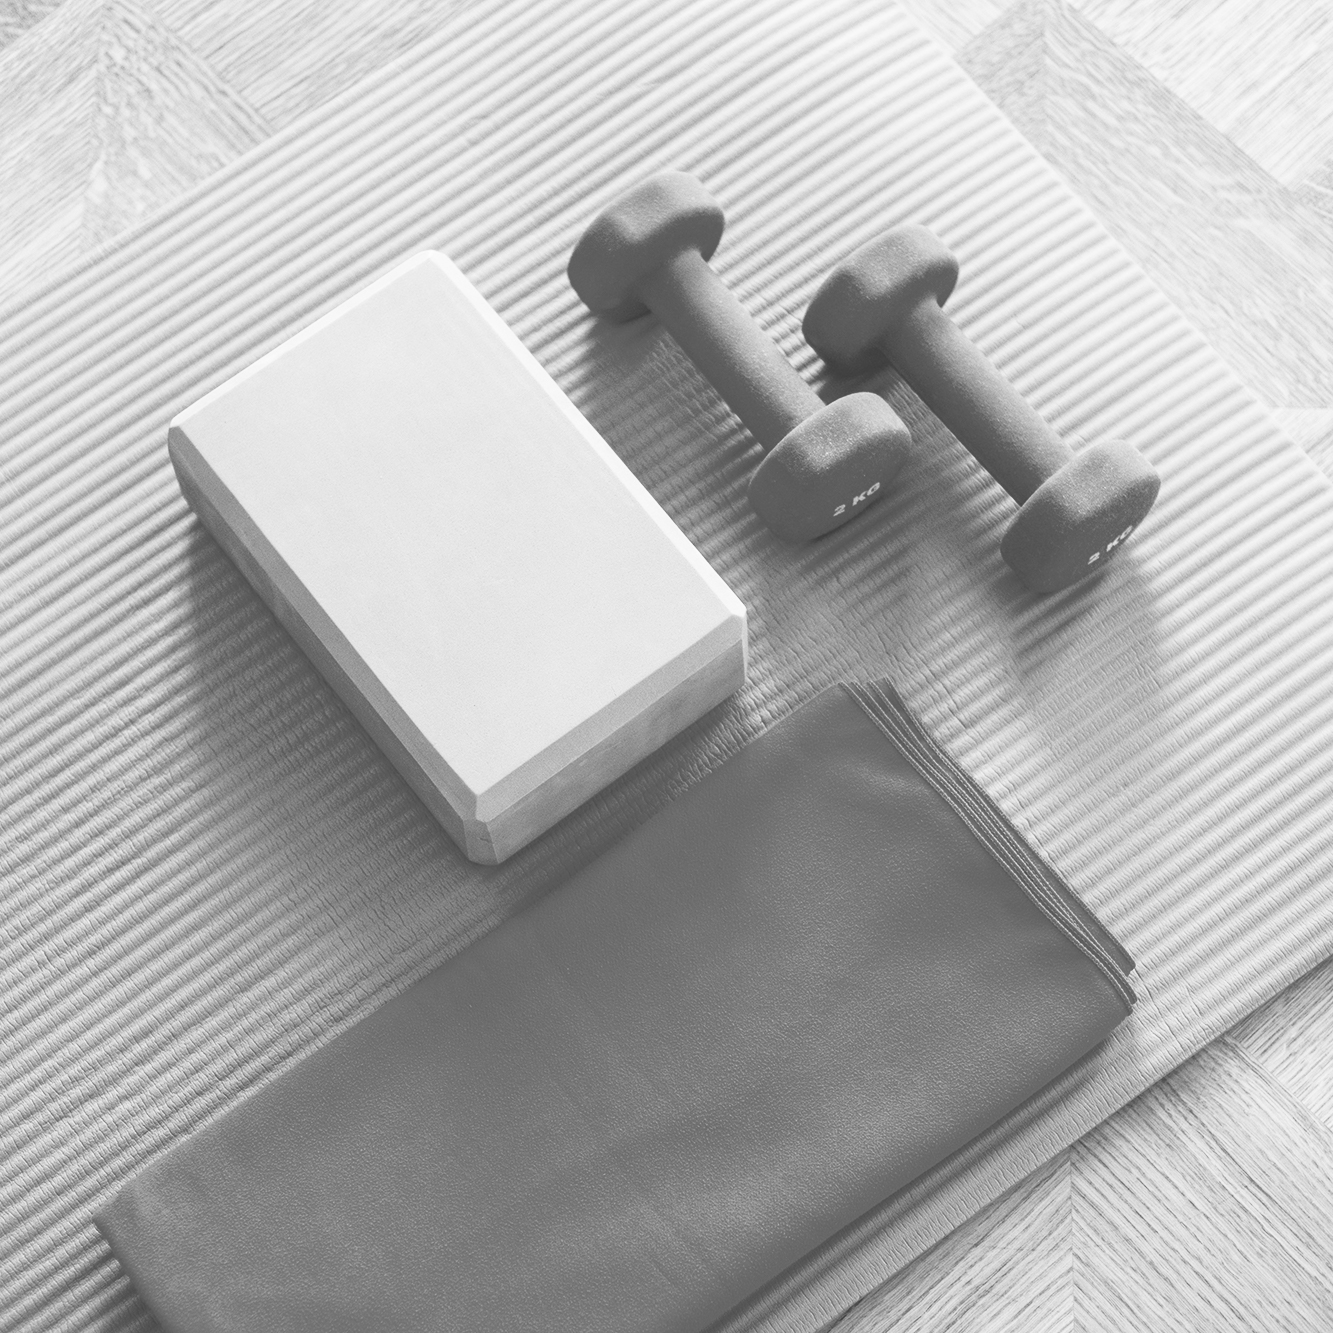 Yoga mat, yoga block and weights to represent the idea of a gym